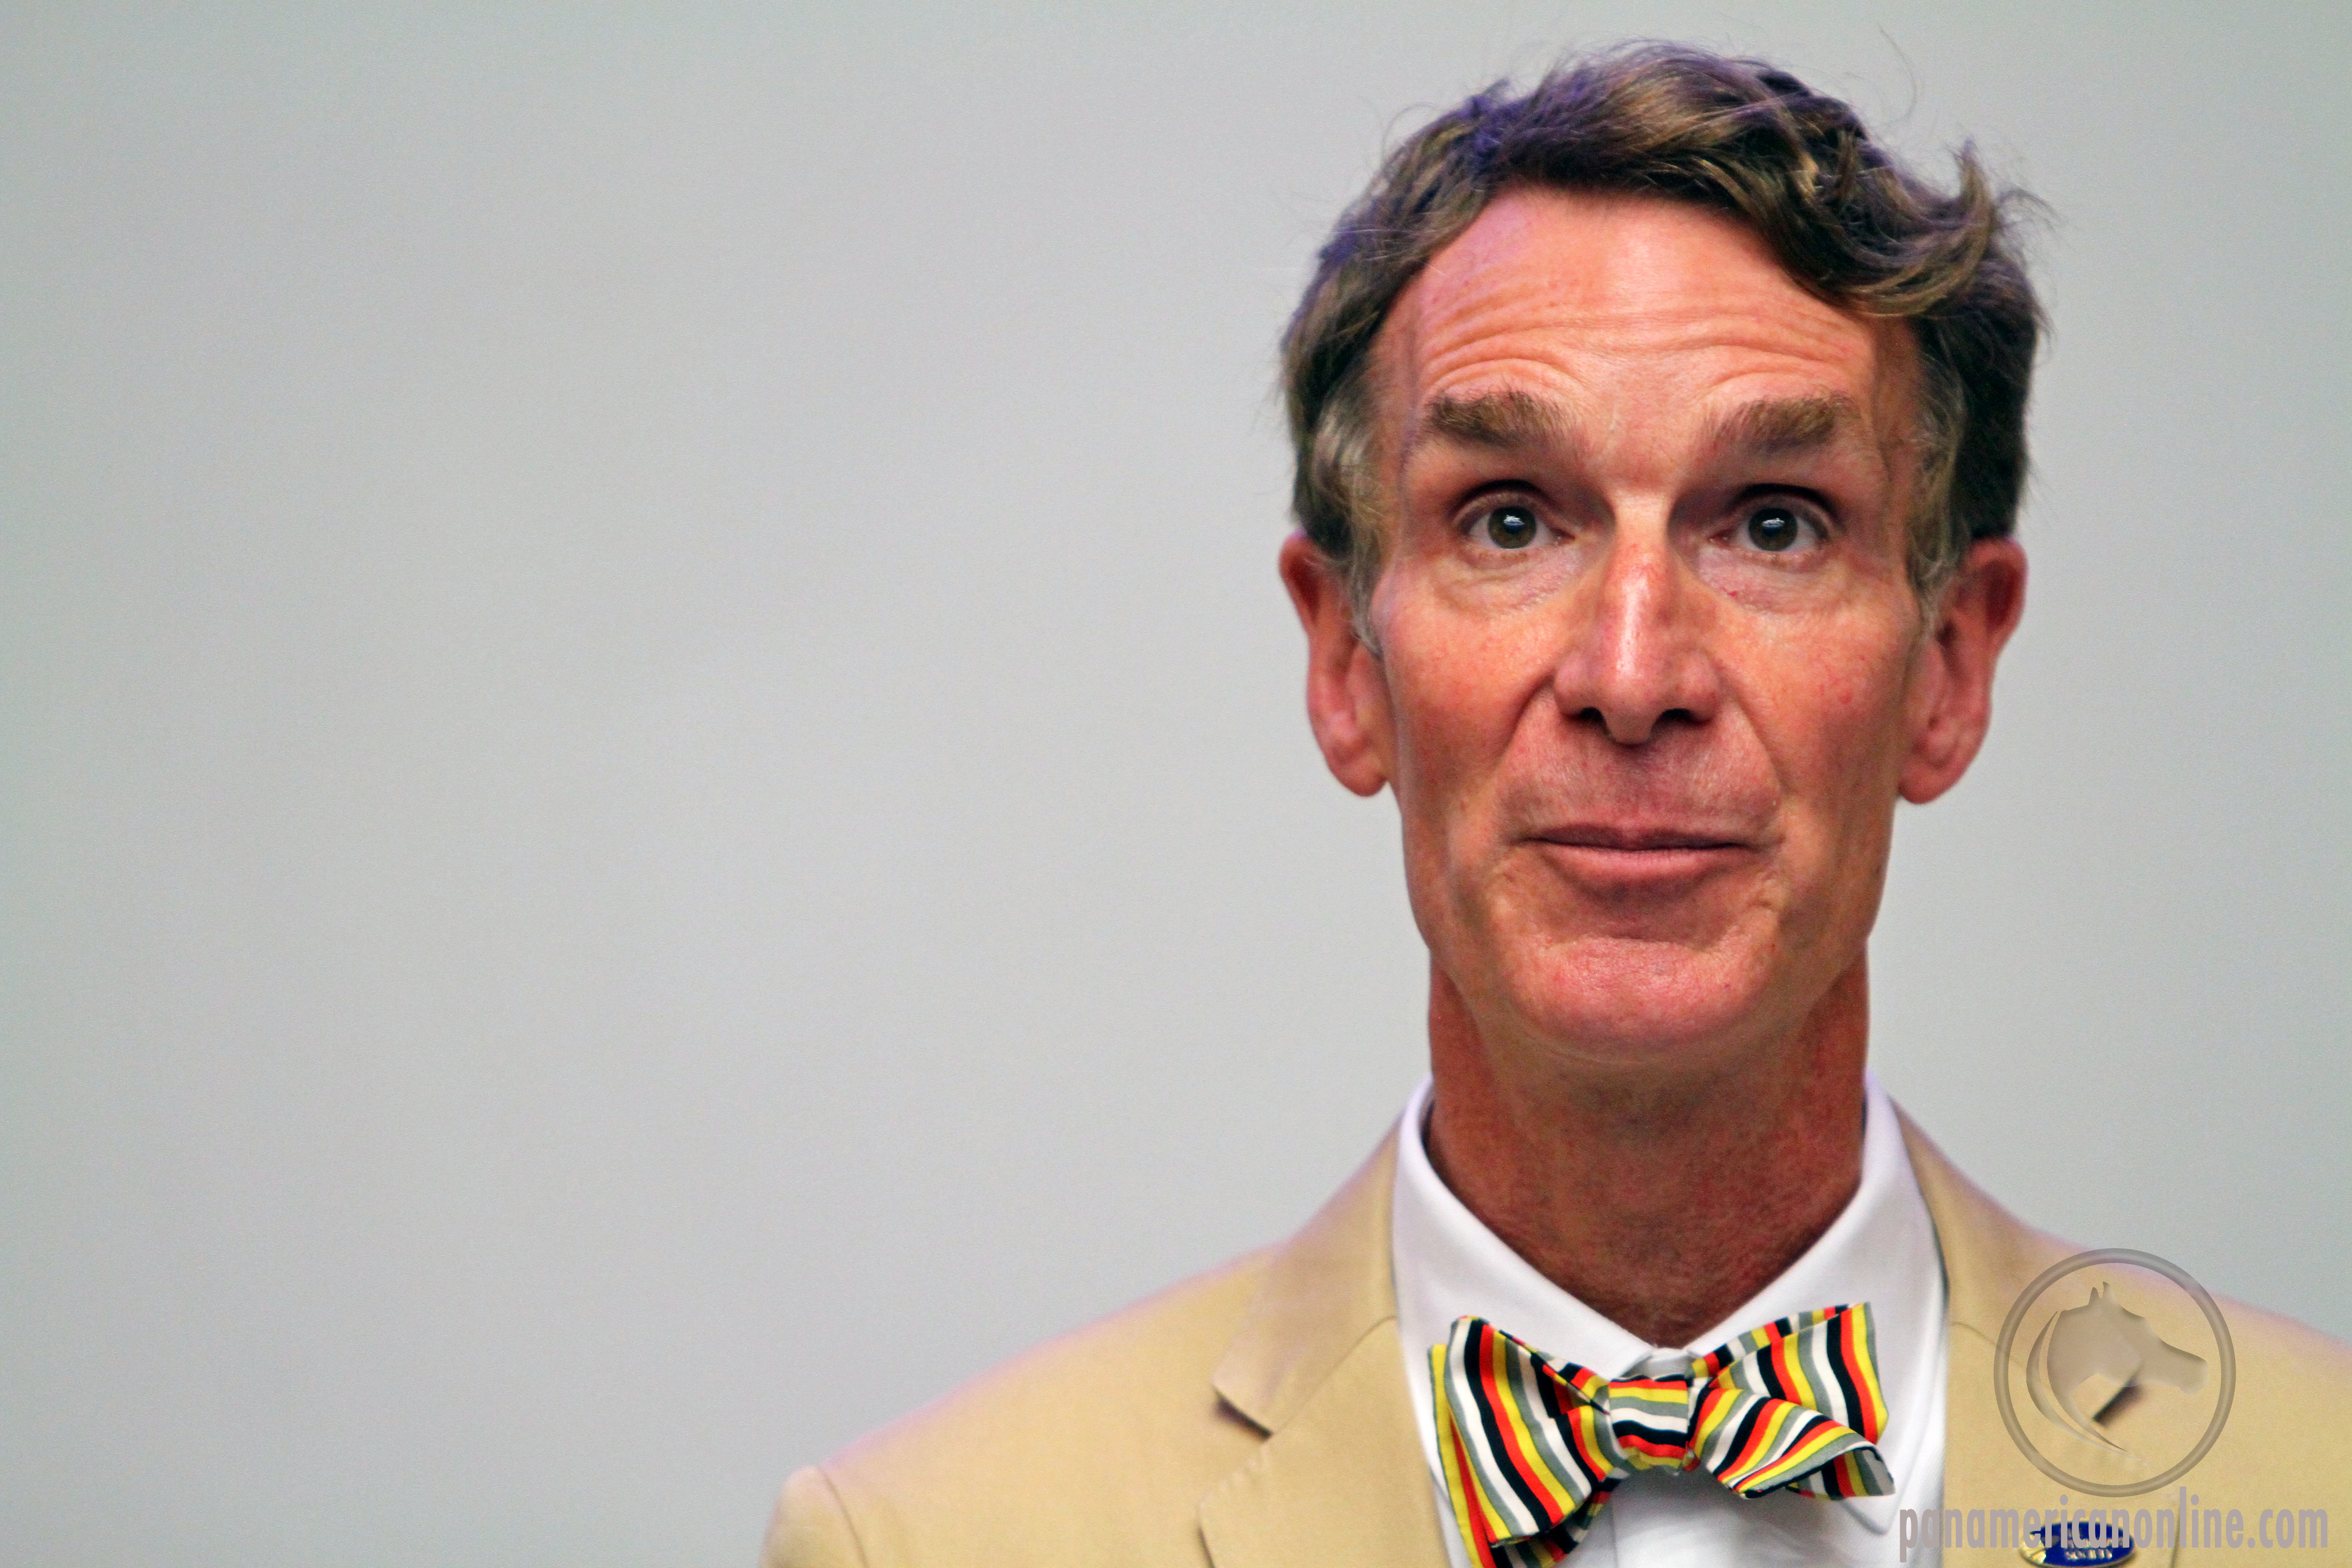 Bill Nye The Science Guy Thinks He Can Fix Global Warming